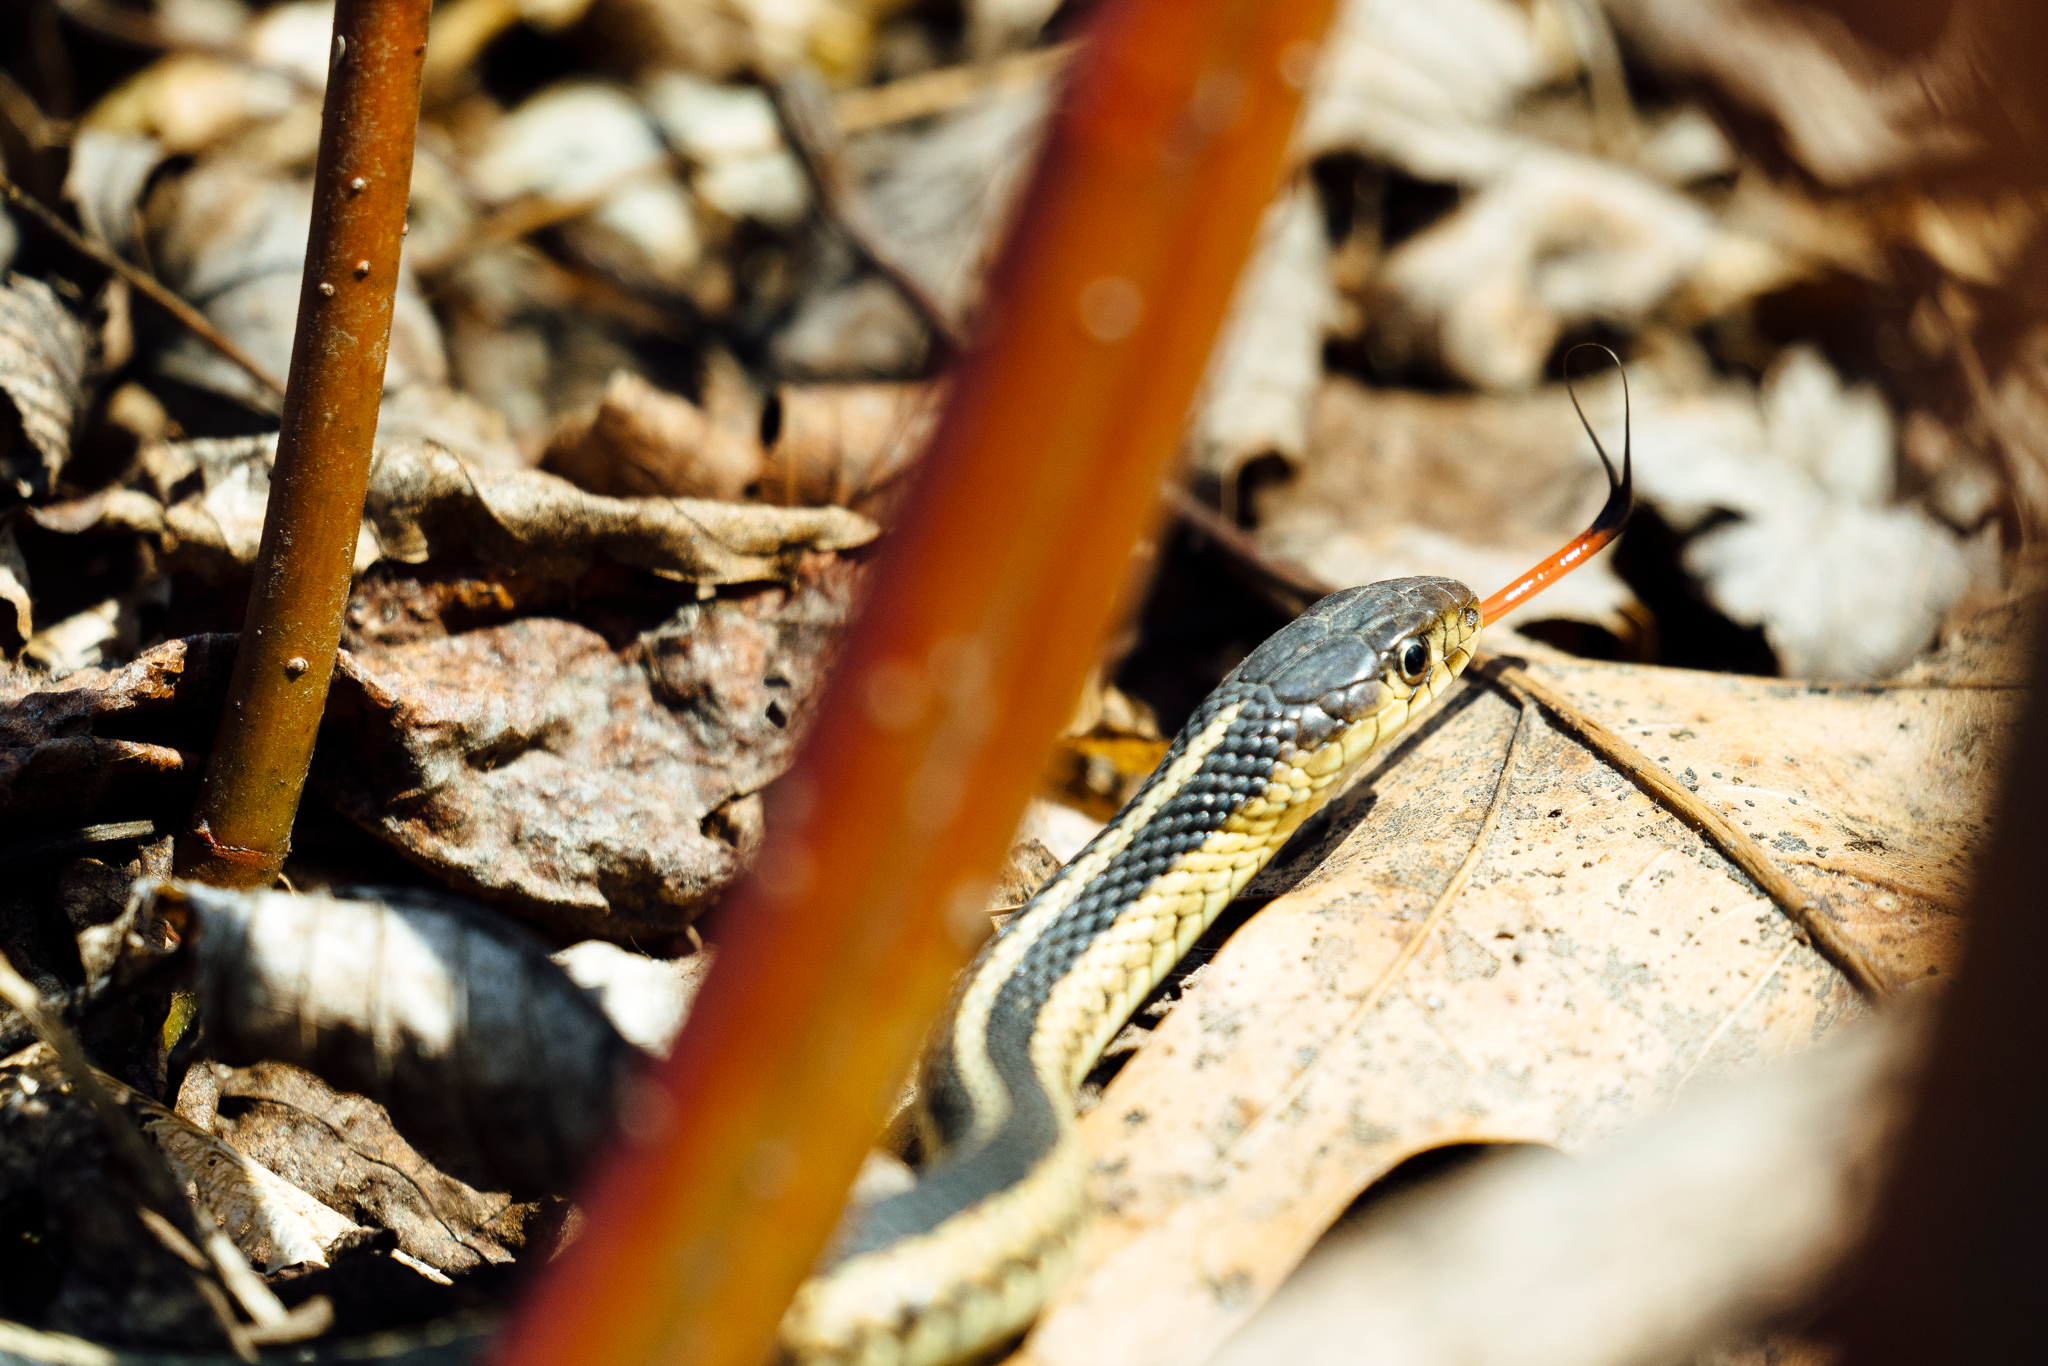 A closeup photography of a garter snake sticking its tongue out